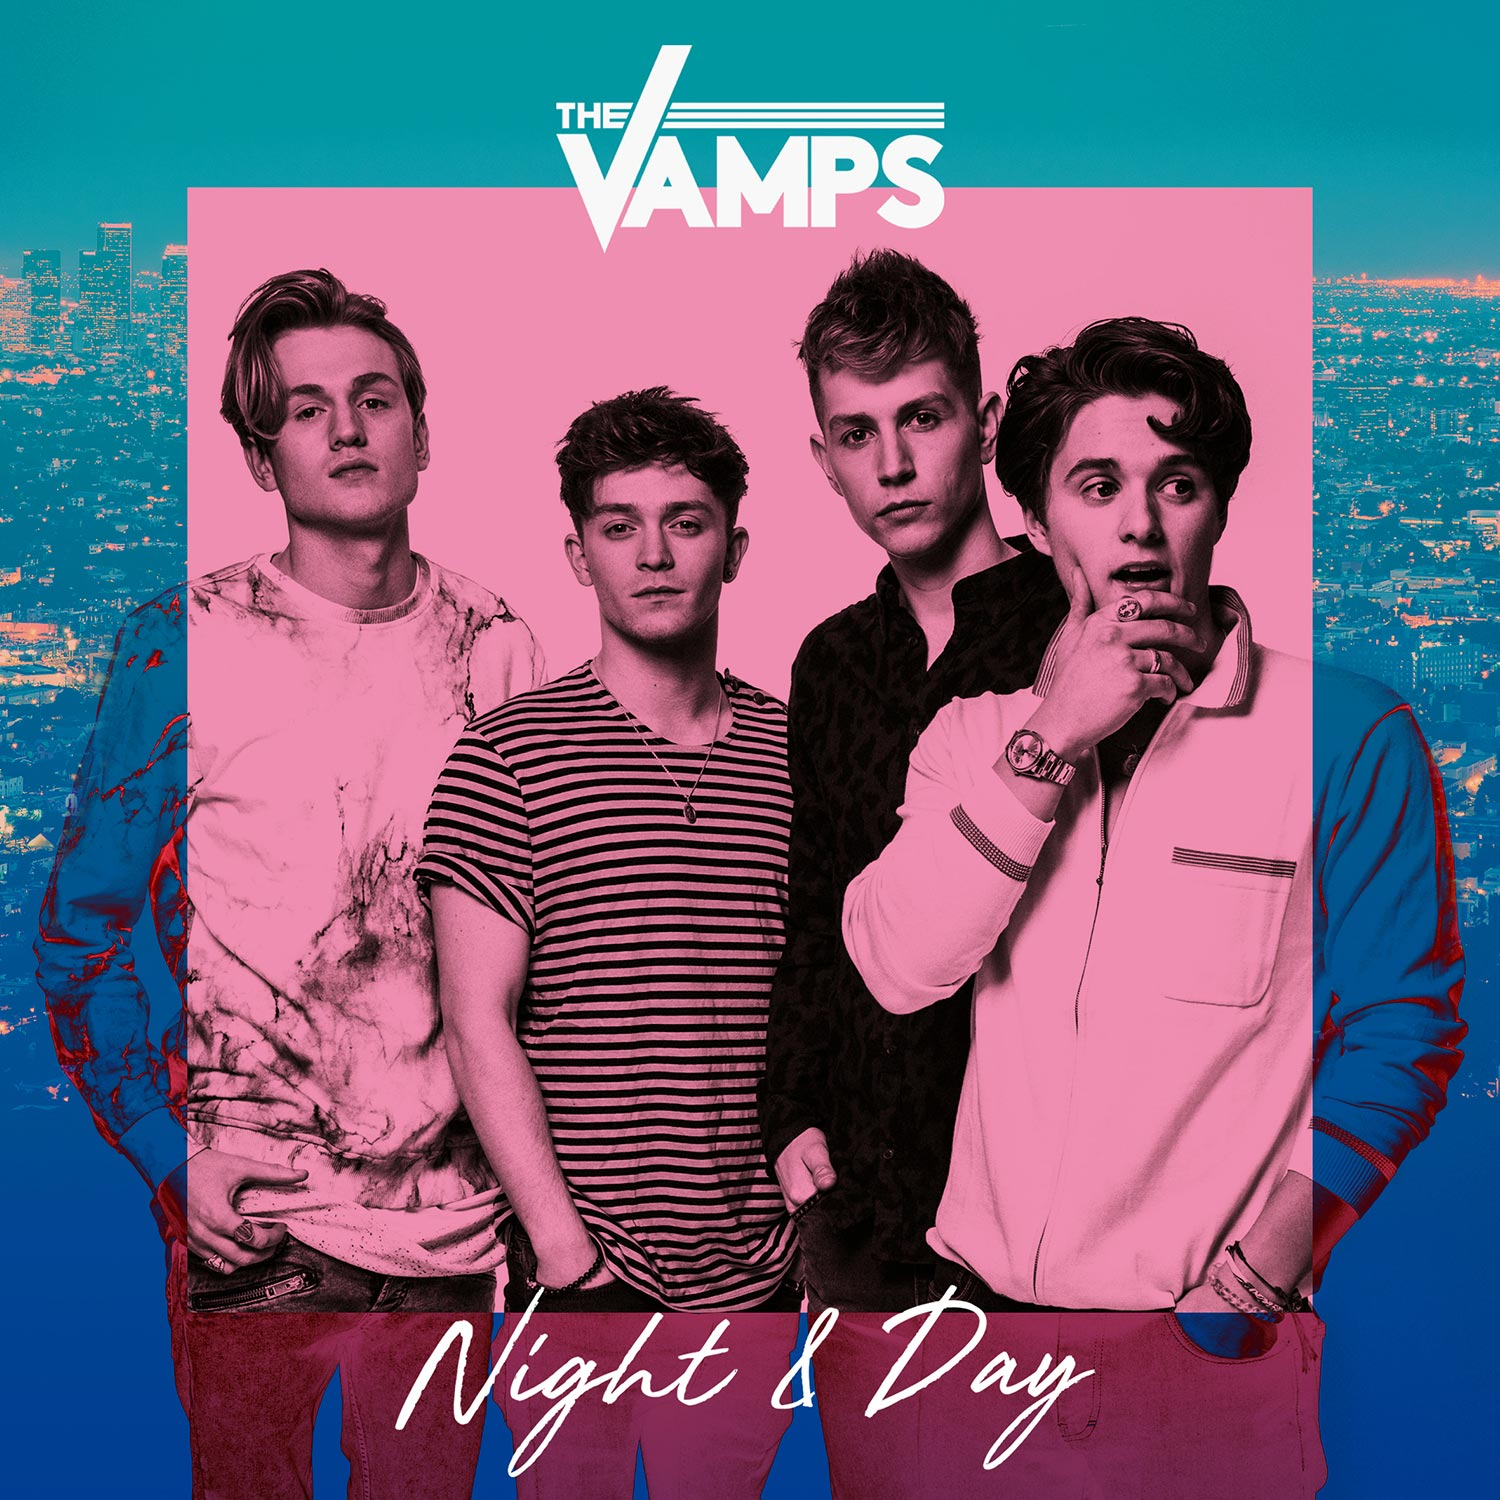 THE-VAMPS_NIGHT-DAY-2